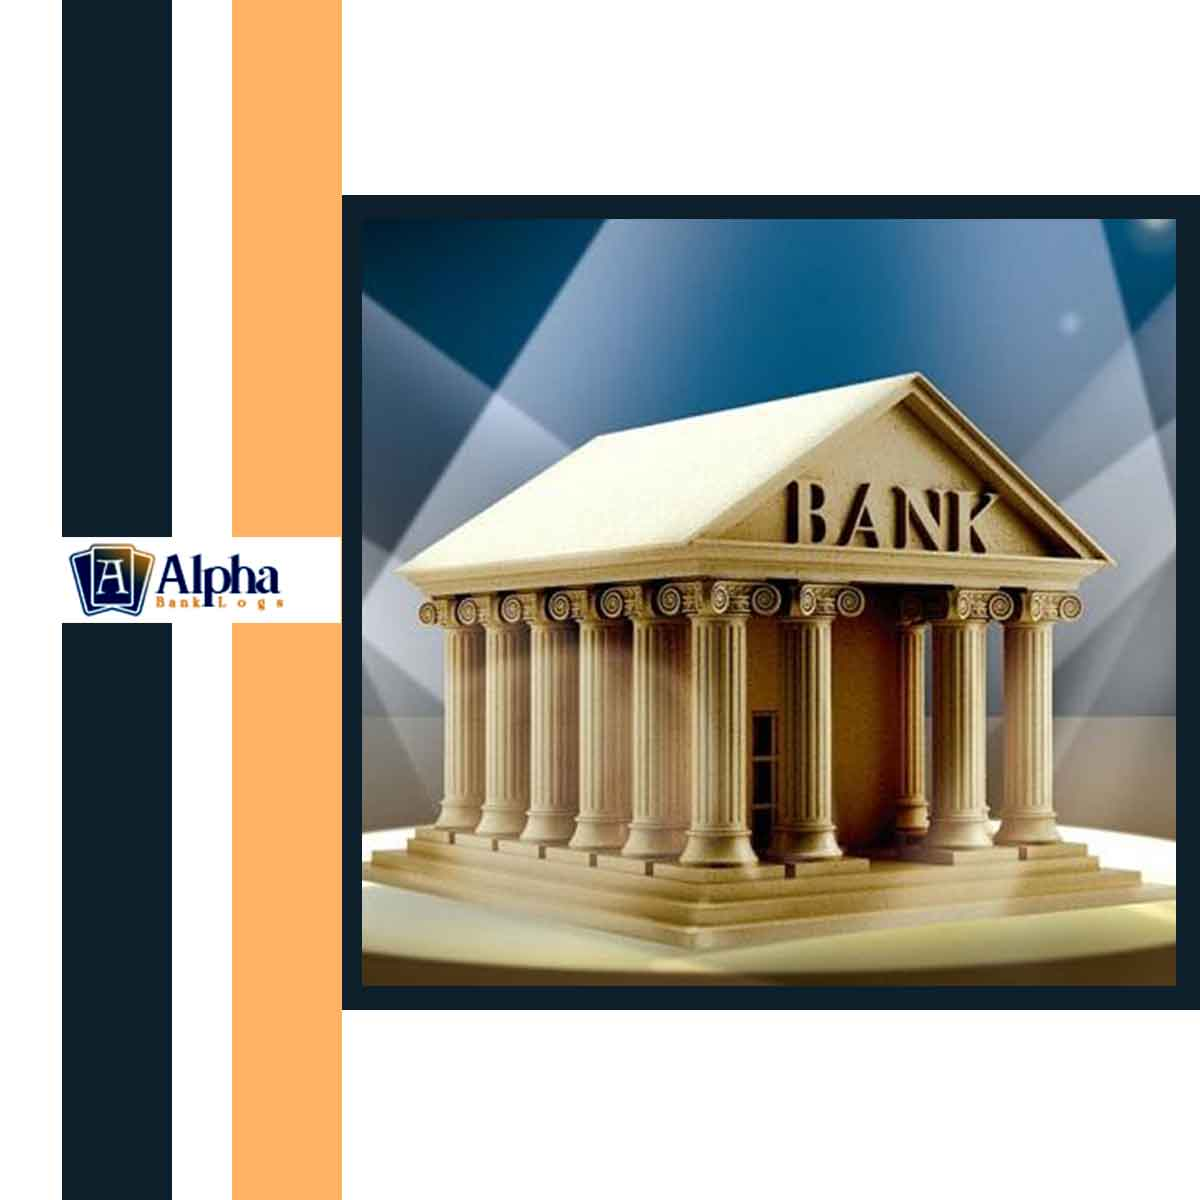 Banking verification info, funds available, etc. 150 Banks